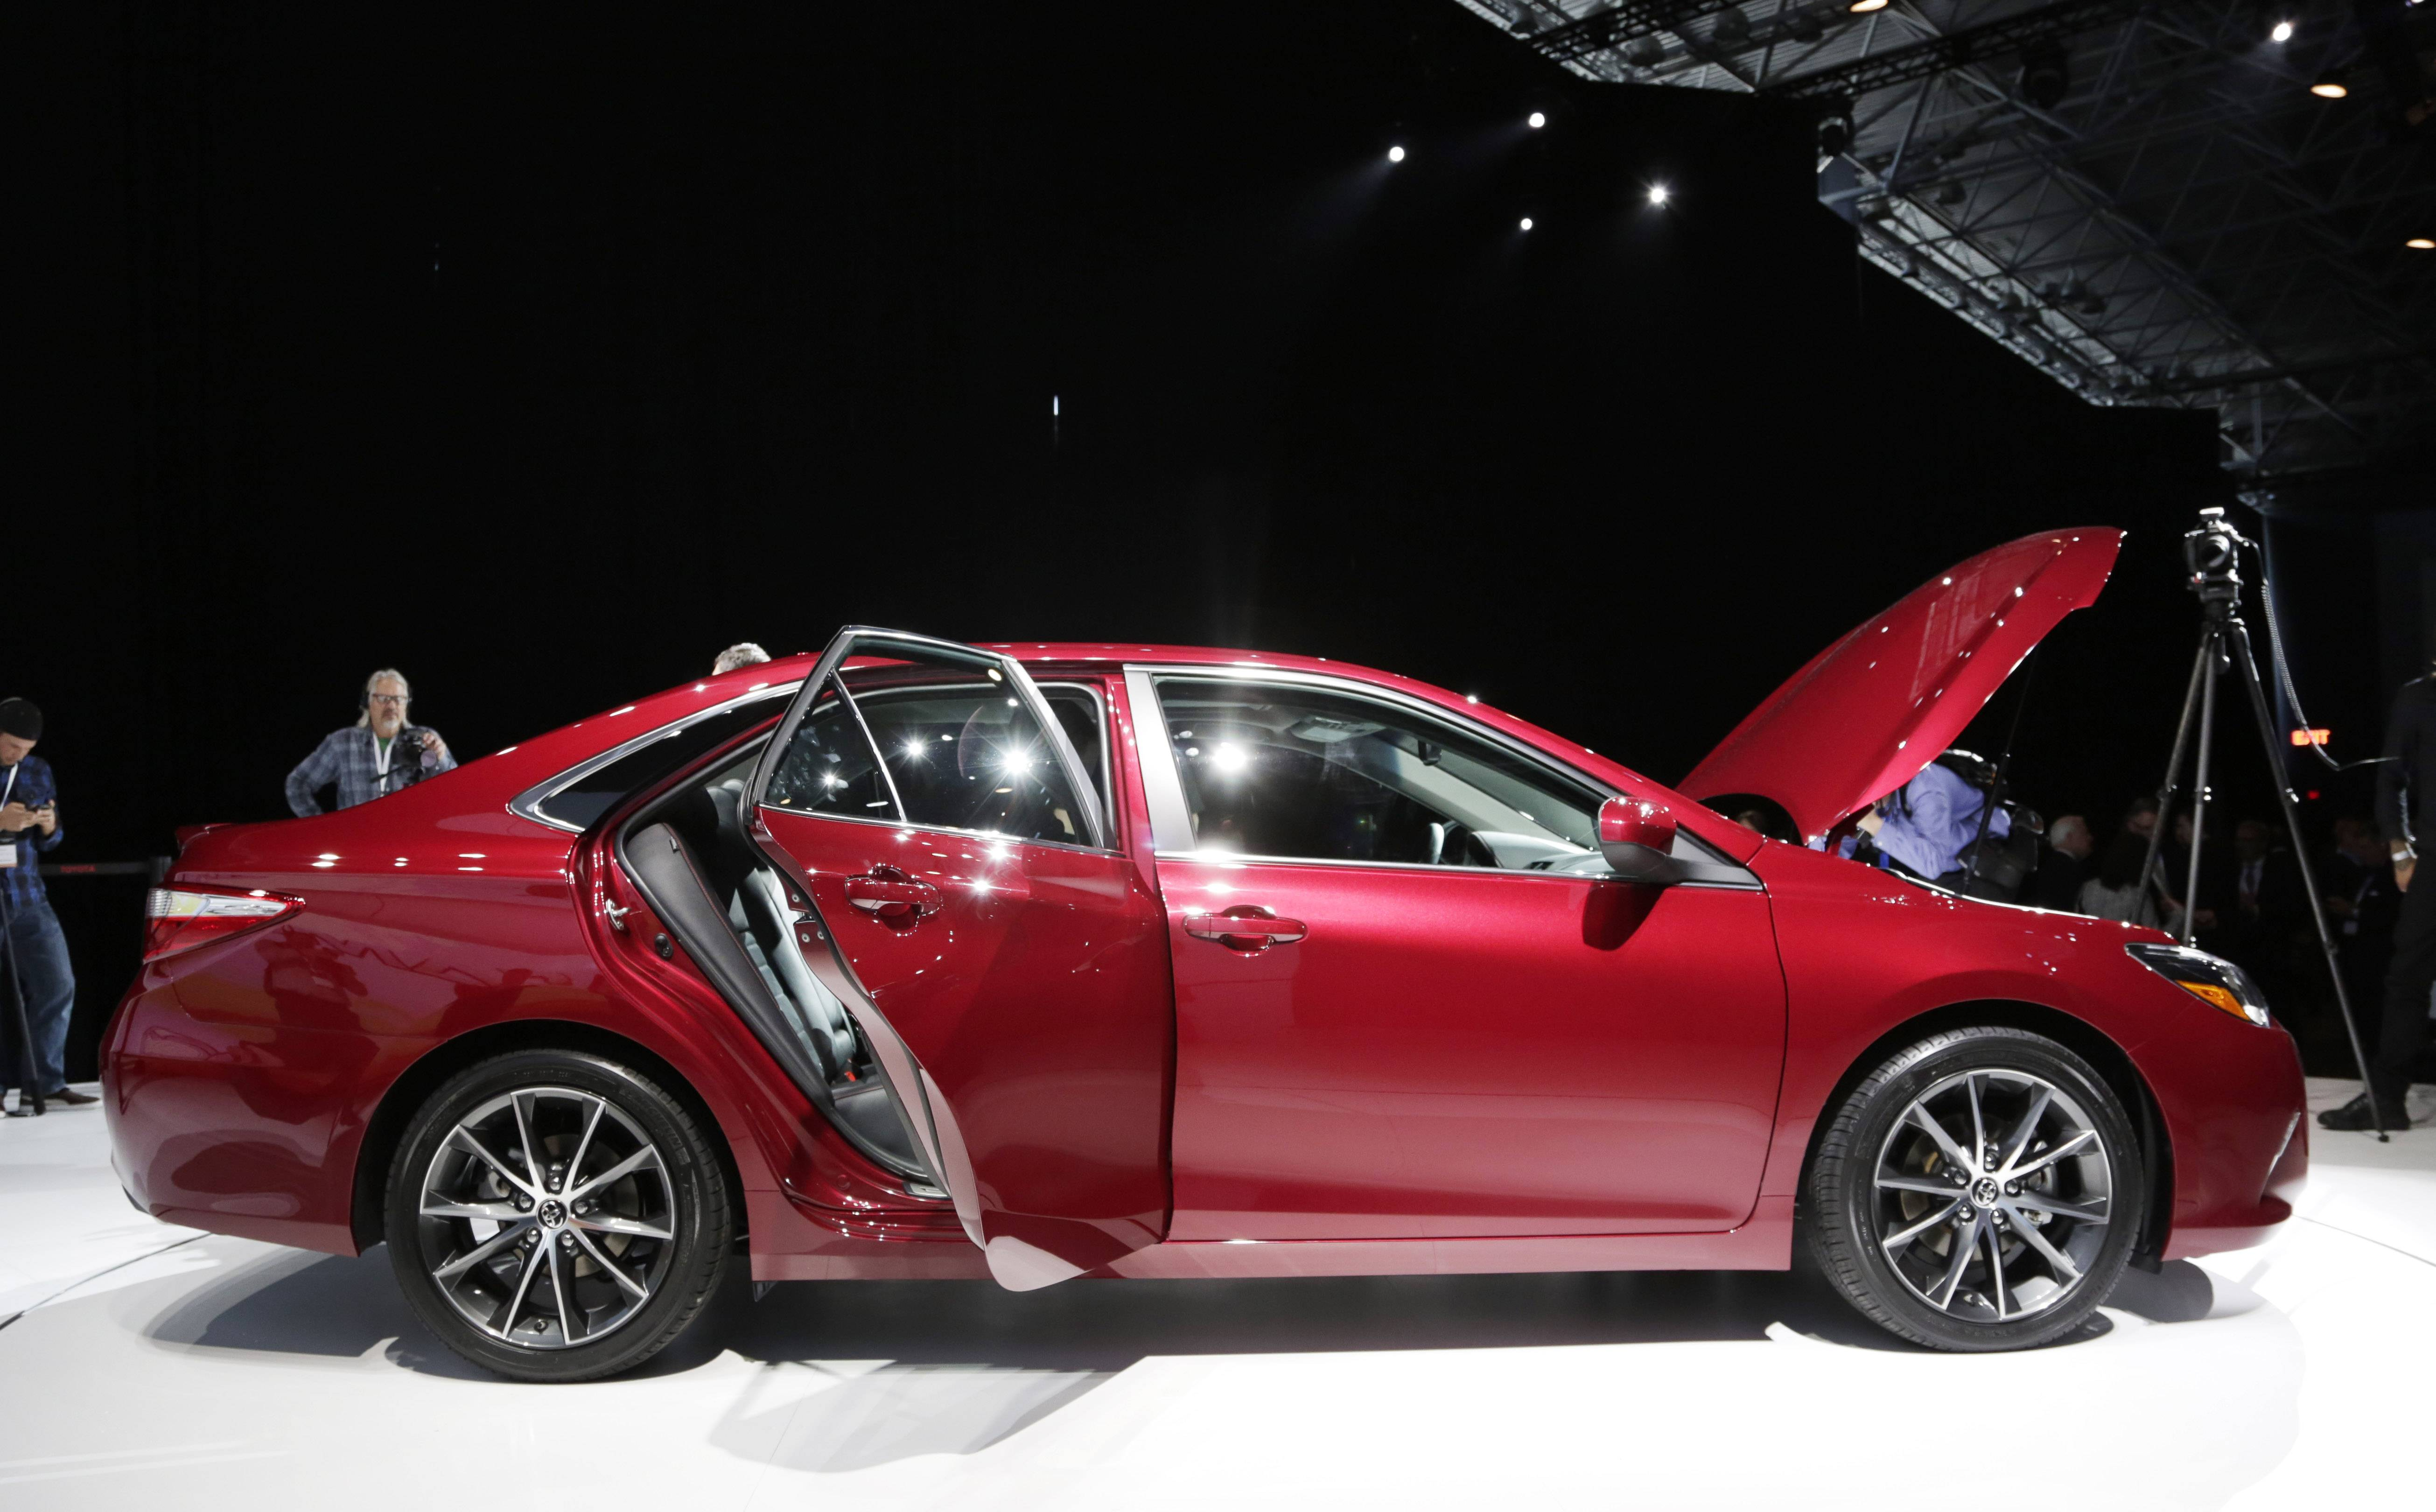 The 2015 Toyota Camry was unveiled at the New York International Auto Show, Wednesday, April 16, 2014, in New York.